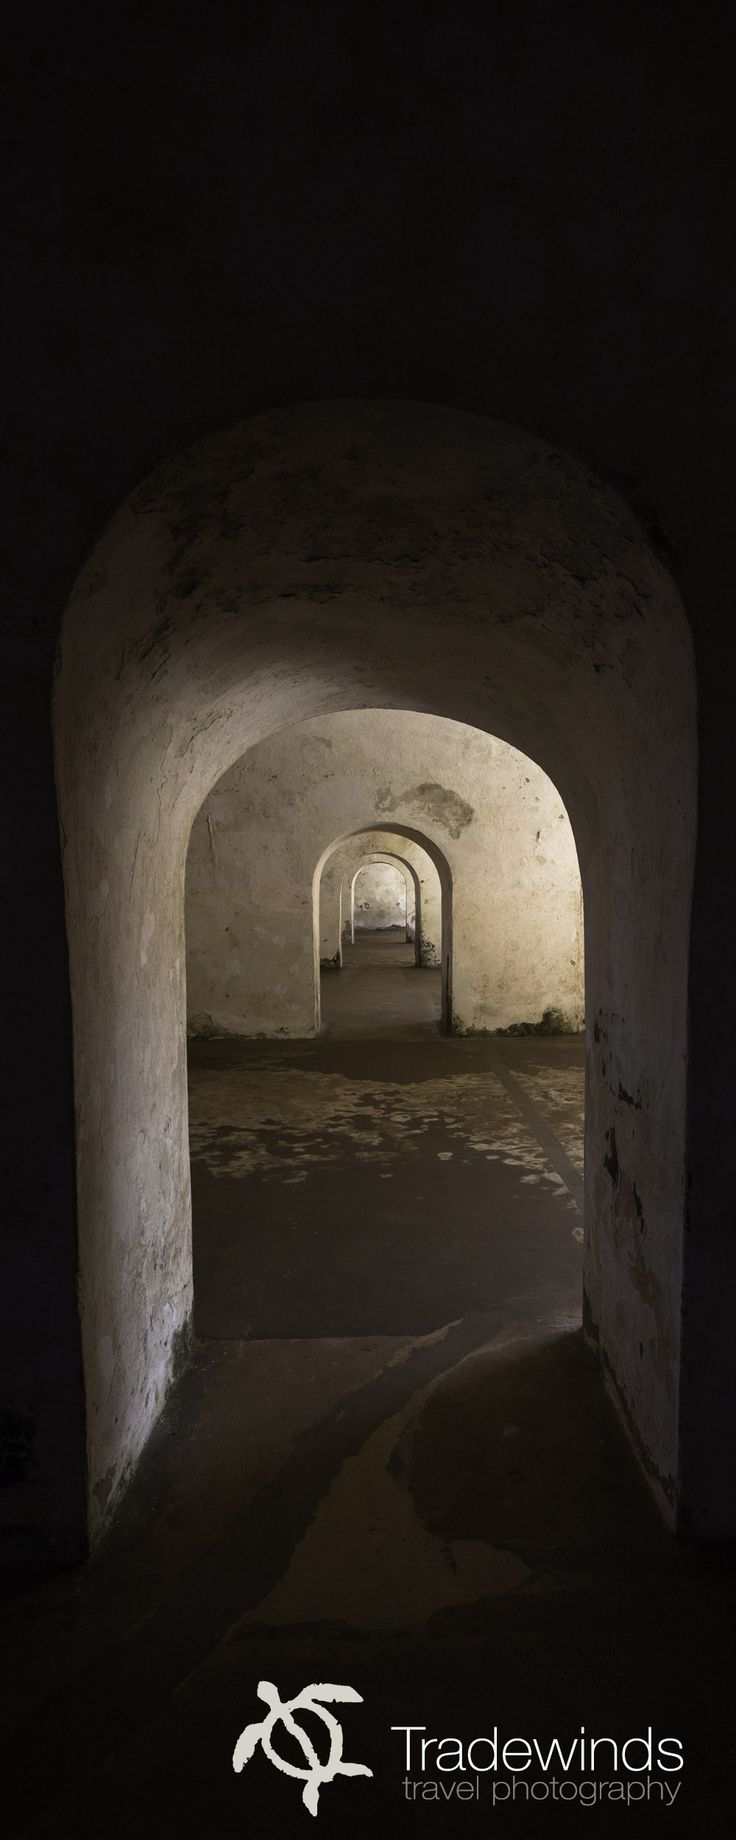 Doorways inside an old fort. San Juan,Puerto Rico  Tradewinds Travel Photography